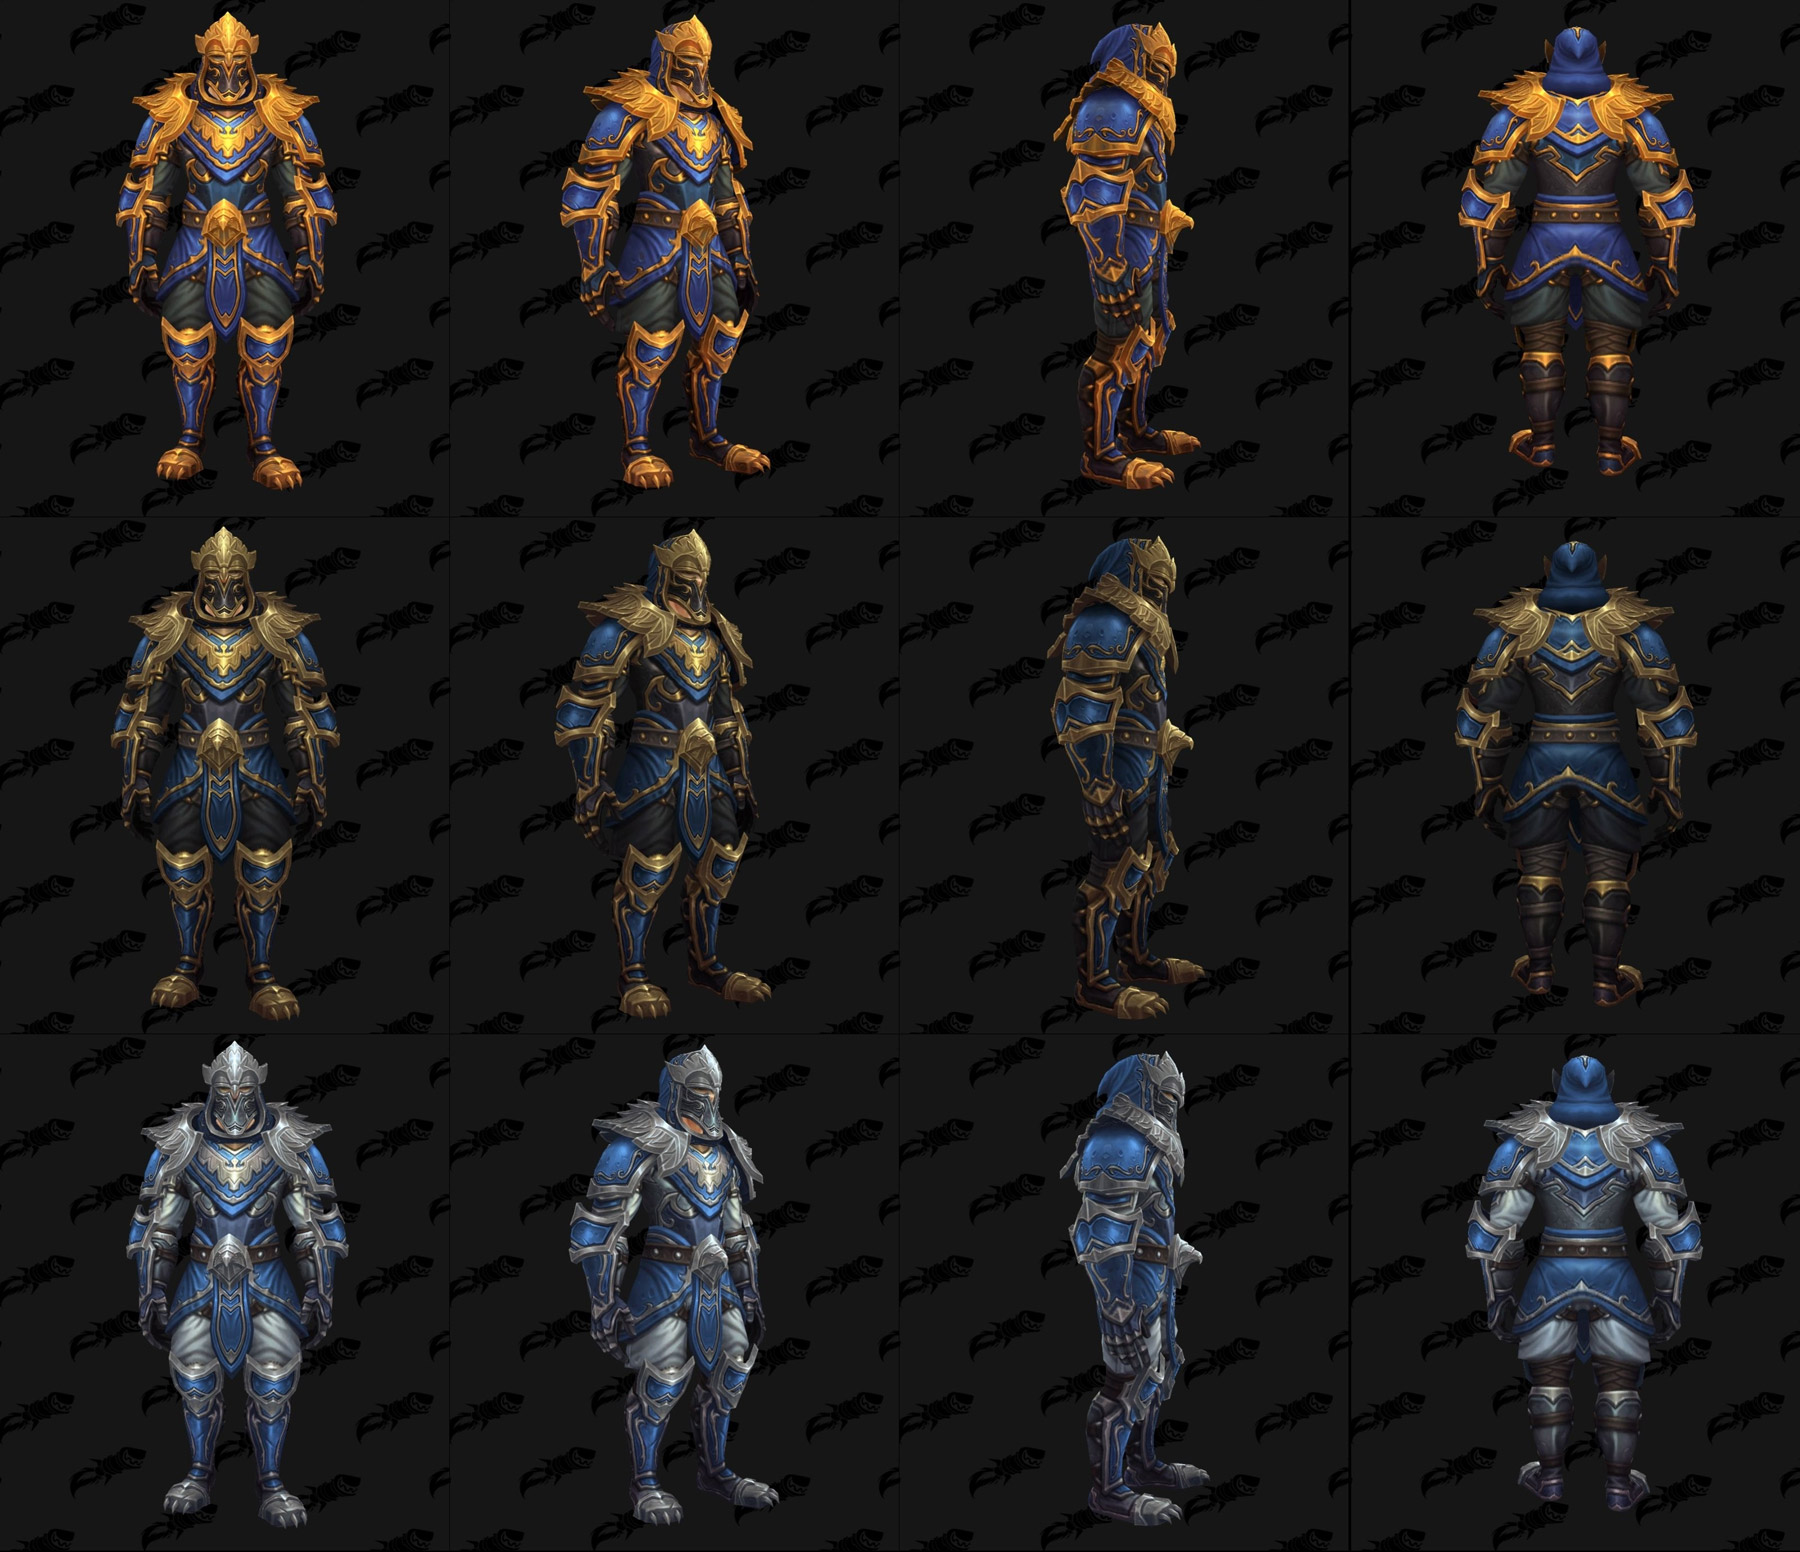 Ensembles Front de guerre (Alliance) en cuir - Tier 3 - Battle for Azeroth